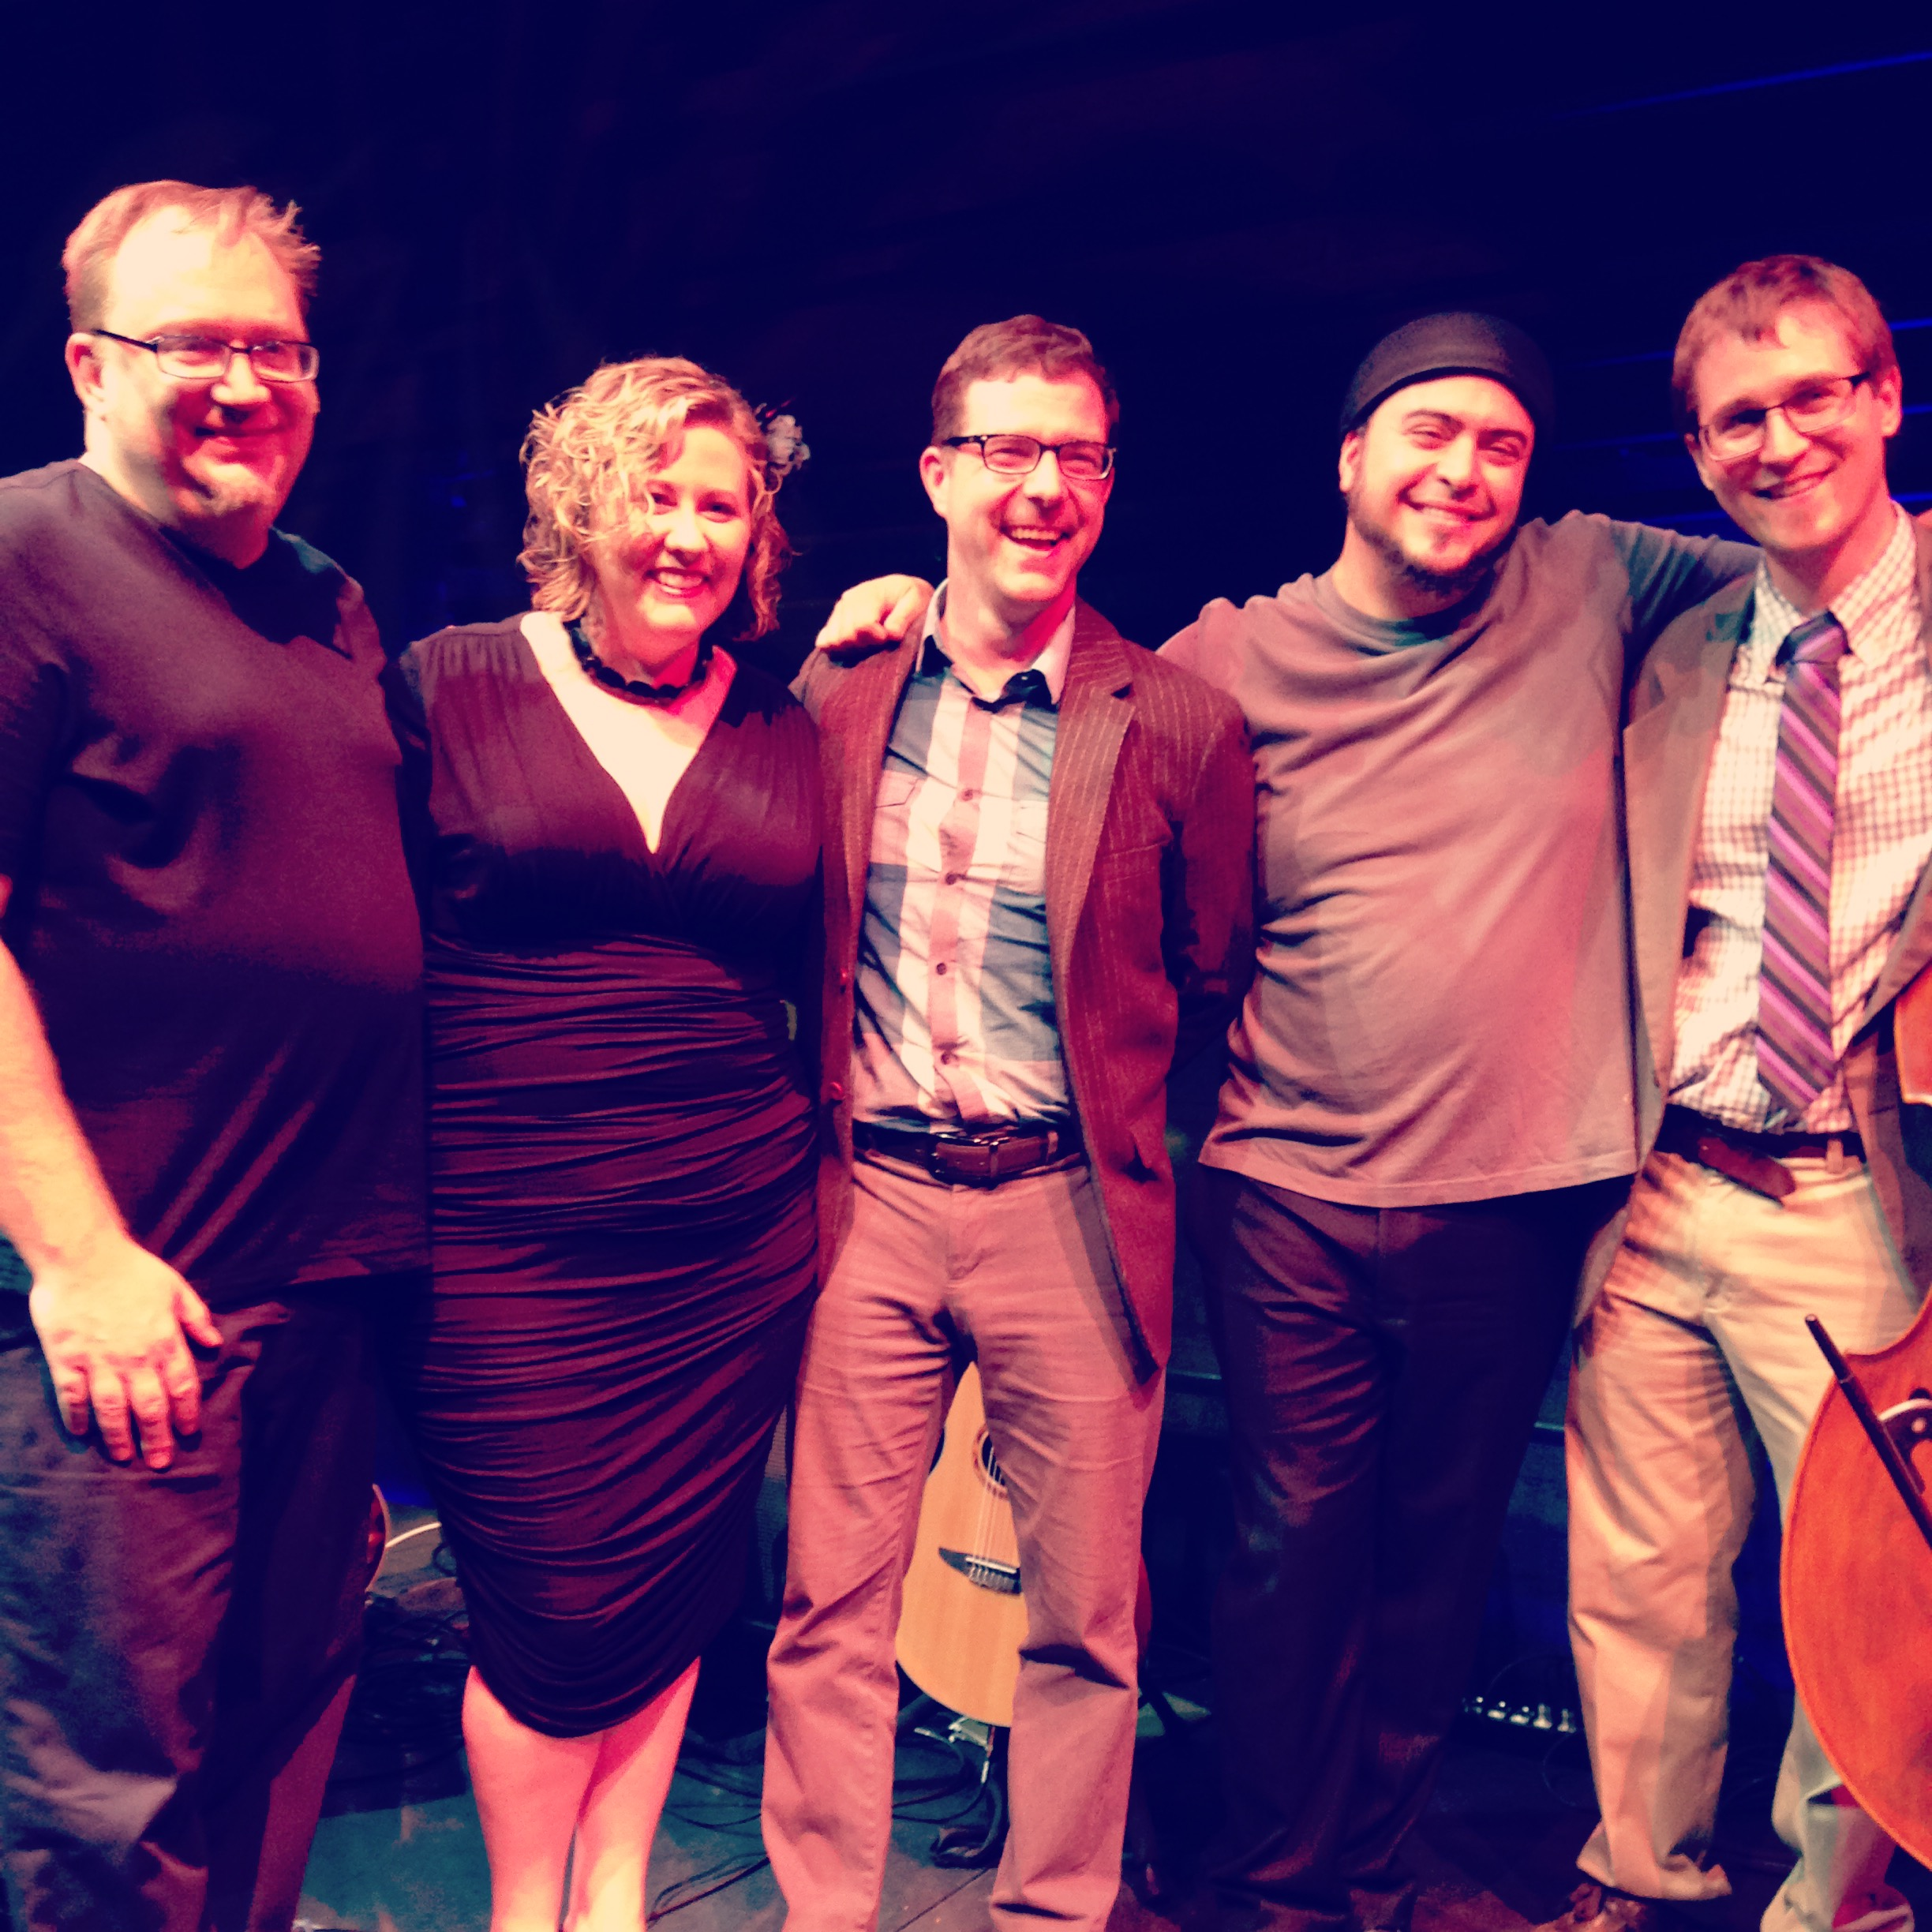 L to R: Andy Hall, Me, Sean Parsons, Ryan Kennedy, and Steve Heffner after our Stage Door Cabaret gig at Peoples Bank Theatre, April 23, 2016